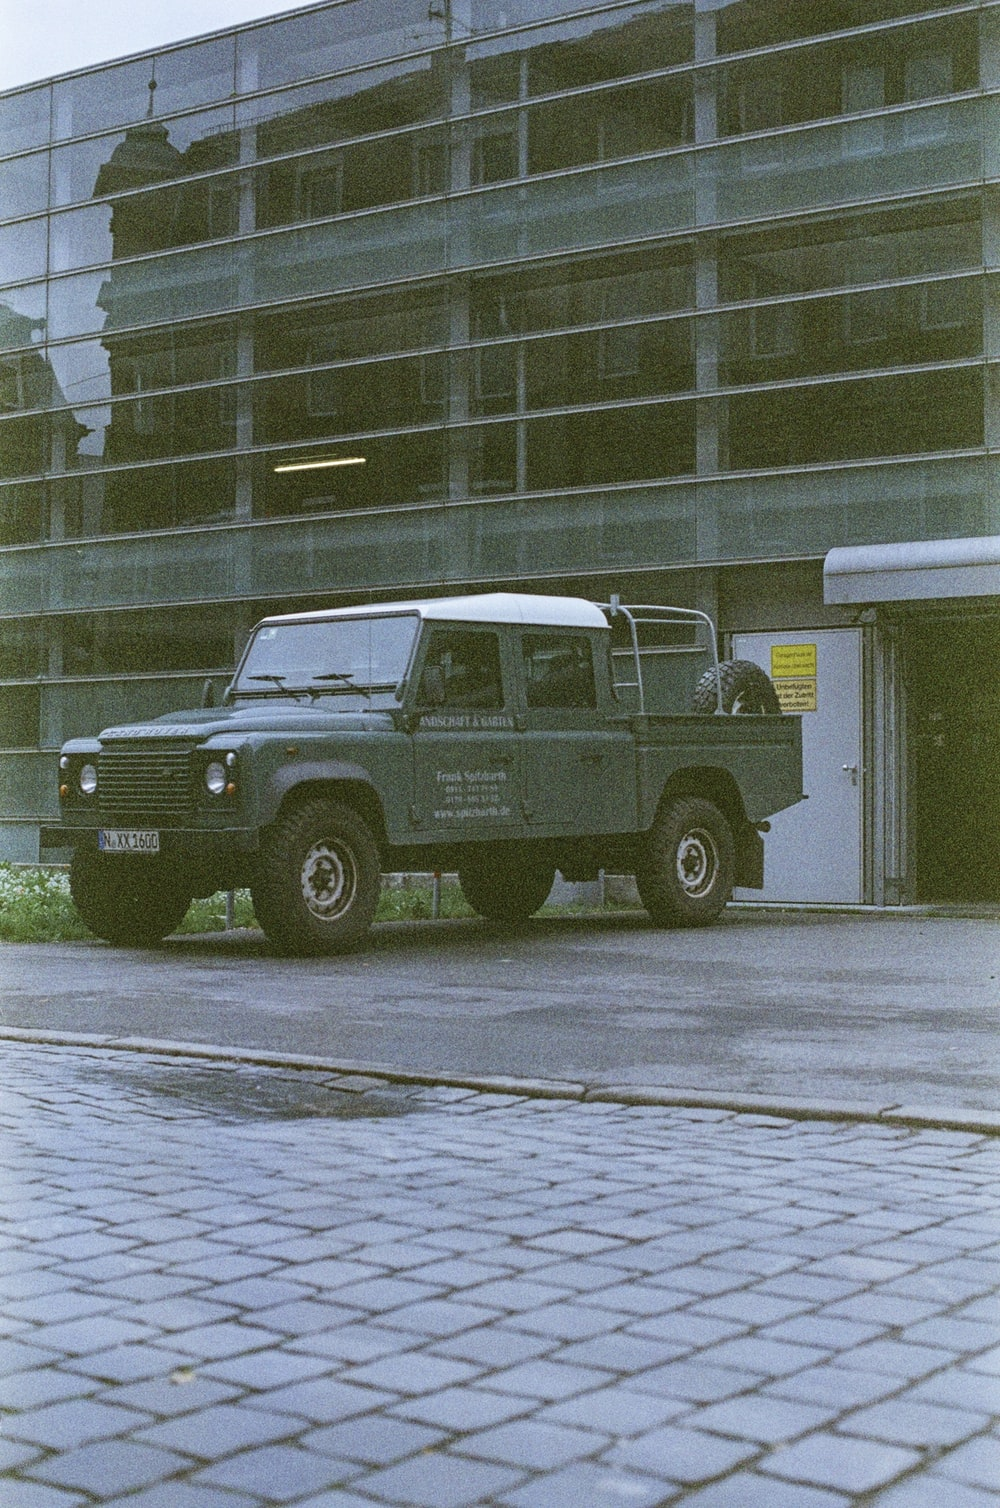 white and black jeep wrangler parked beside brown concrete building during daytime